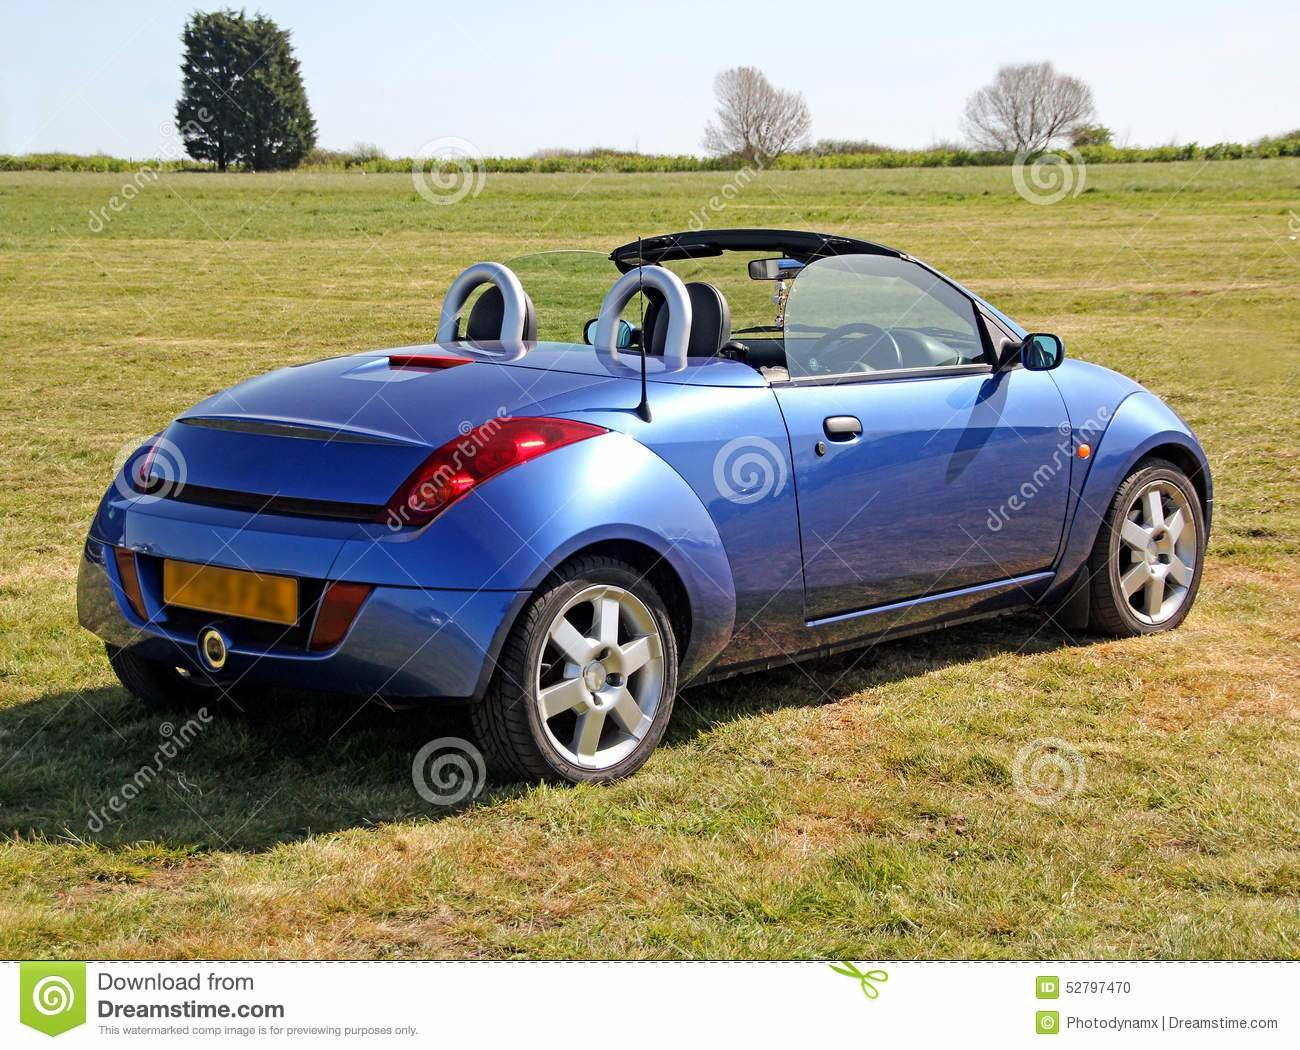 Latest Ford Ka Convertible Car Stock Photo Image Of Transport 52797470 Free Download